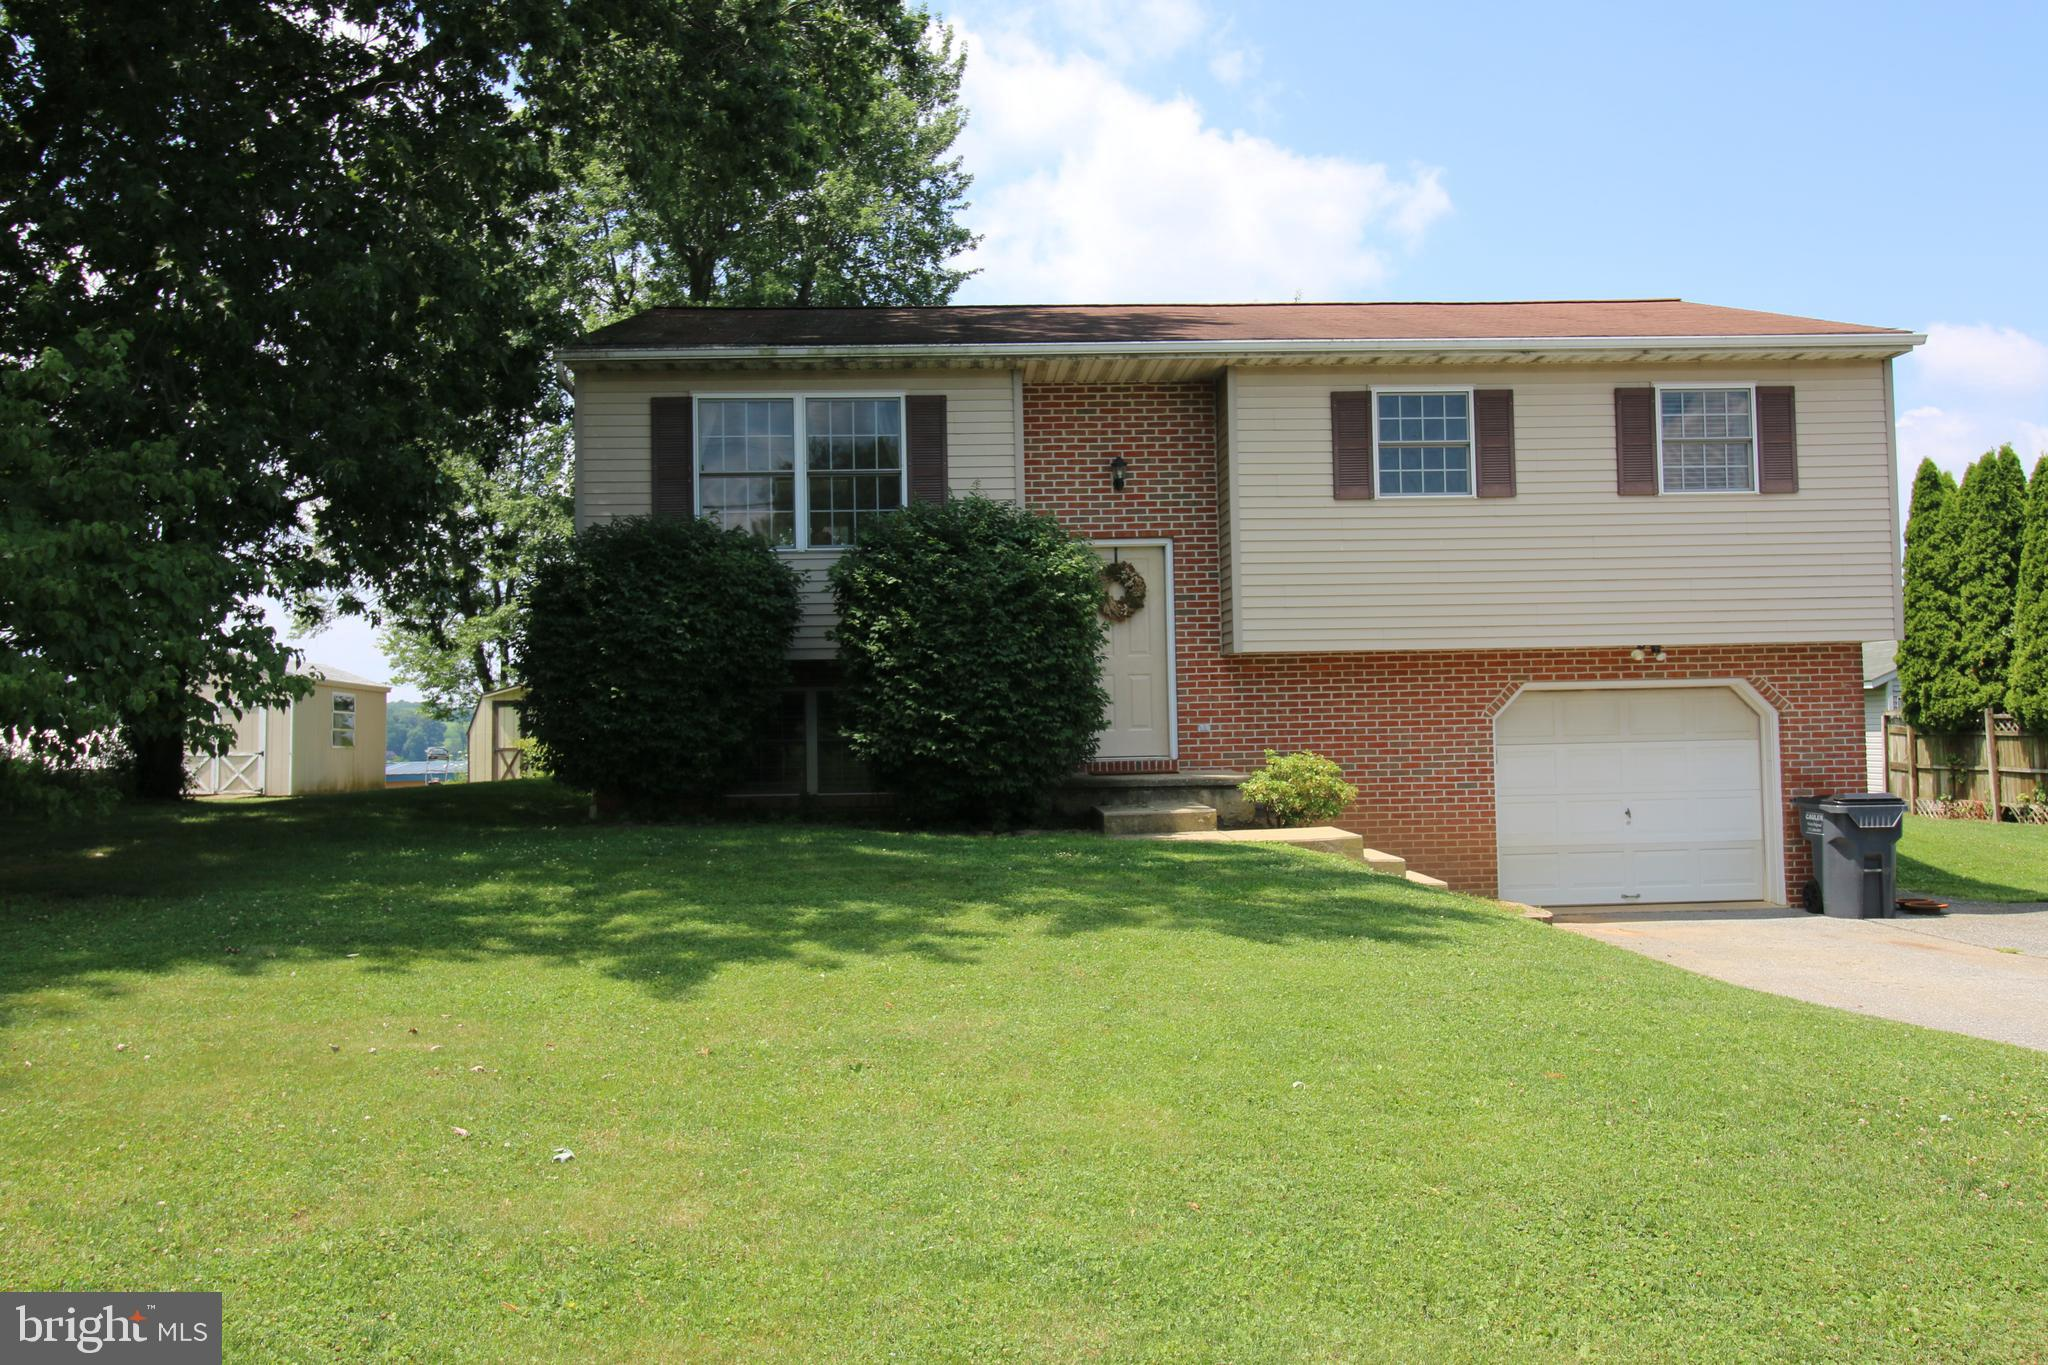 1314 RAWLINSVILLE ROAD, NEW PROVIDENCE, PA 17560